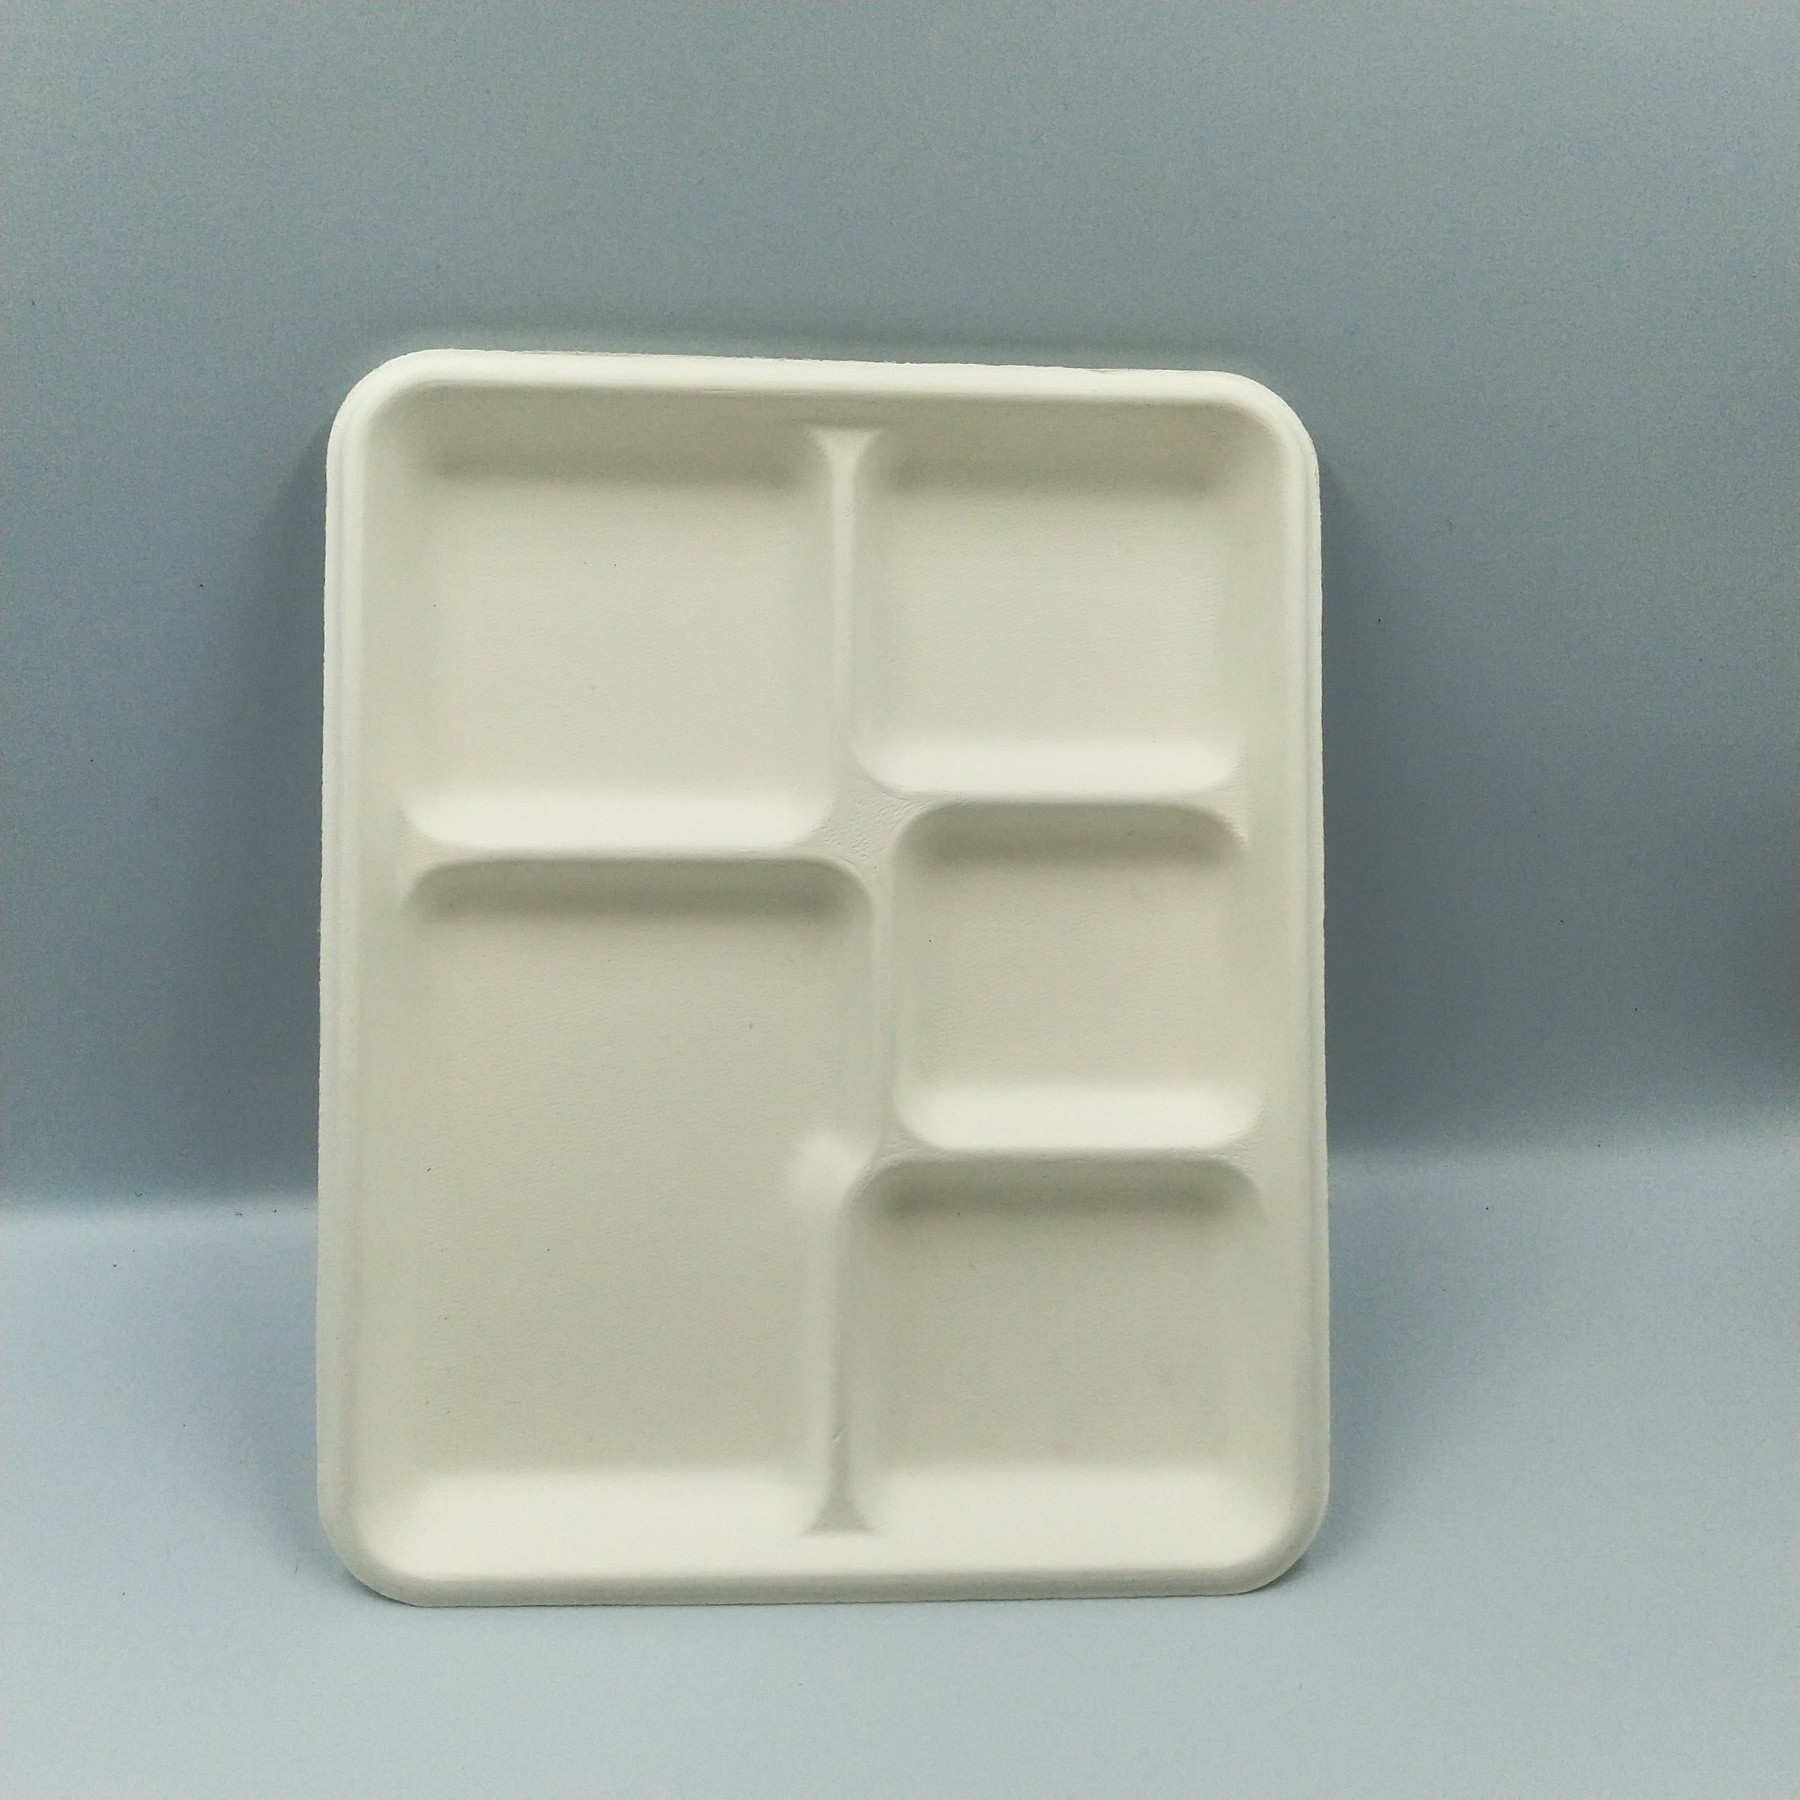 disposable-5-compartment-tray-biodegradable-bagasse-food.jpg